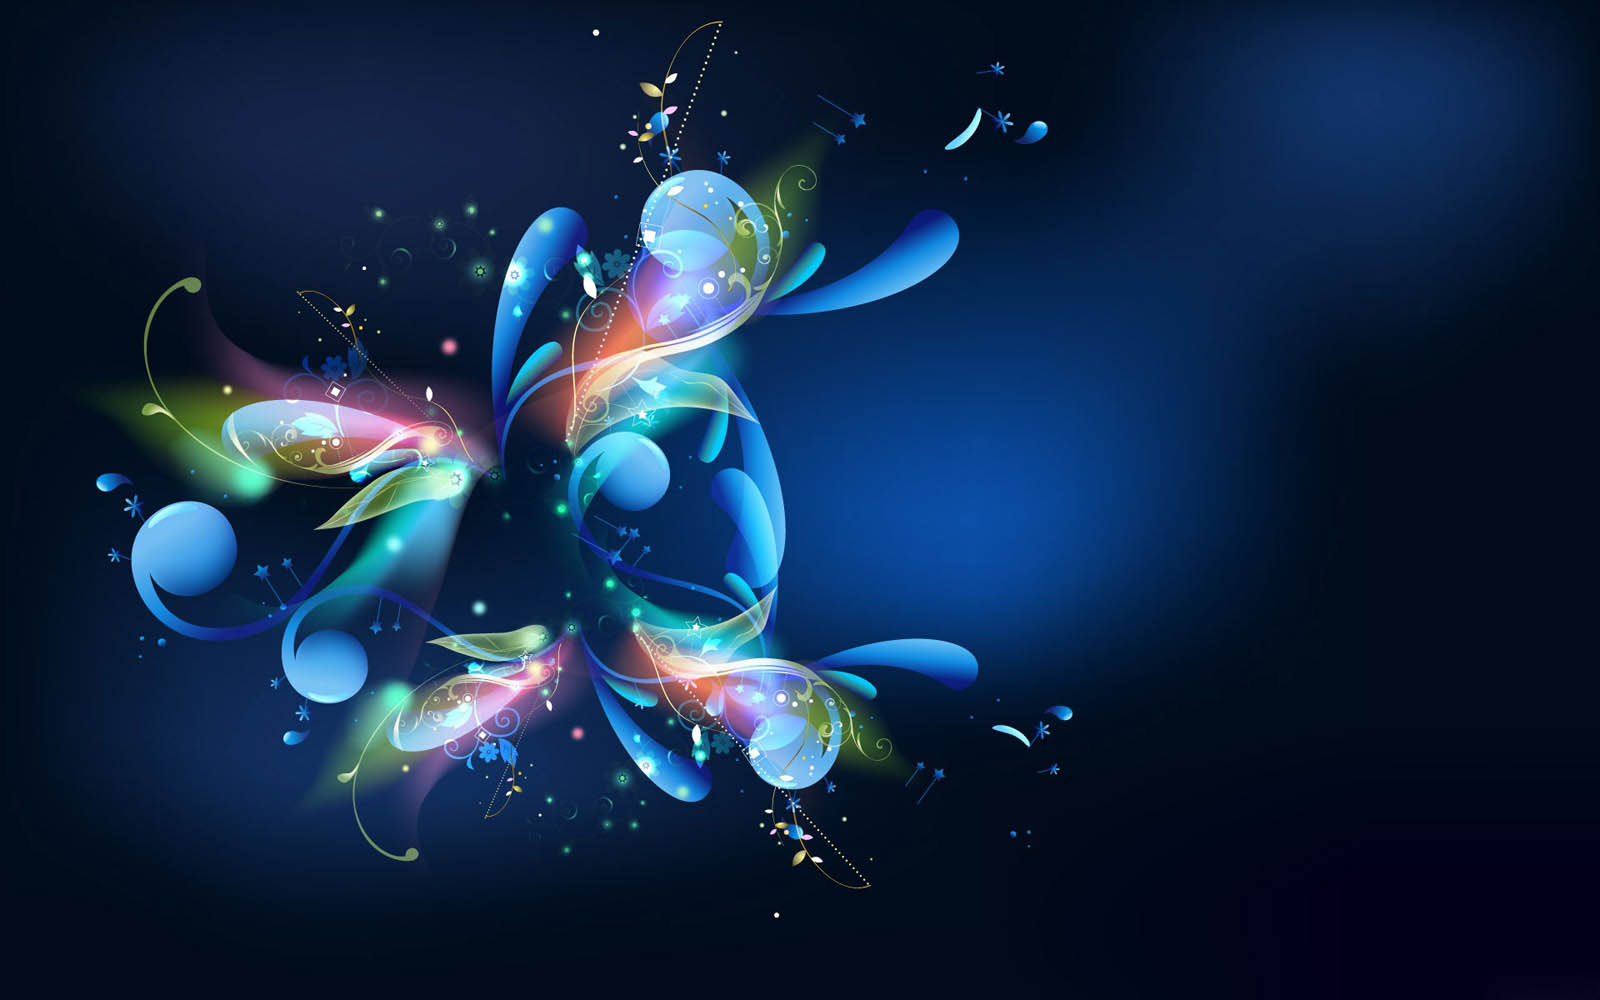 Abstract Wallpapers BackgroundsPhotos Images and Pictures for 1600x1000